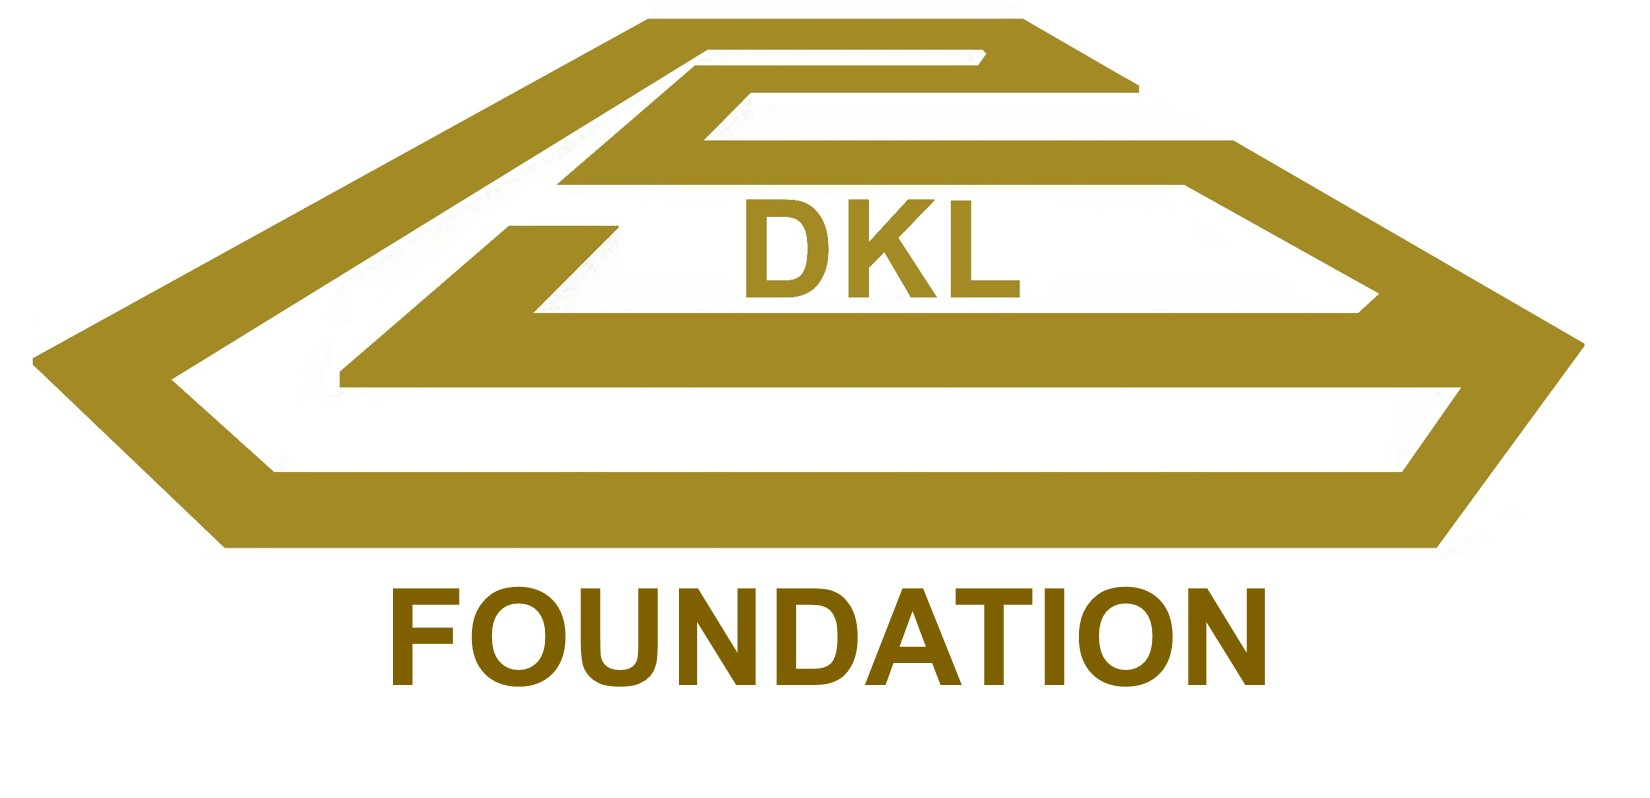 dkls linguistic ambassador award essay writing competition csr initiative partners